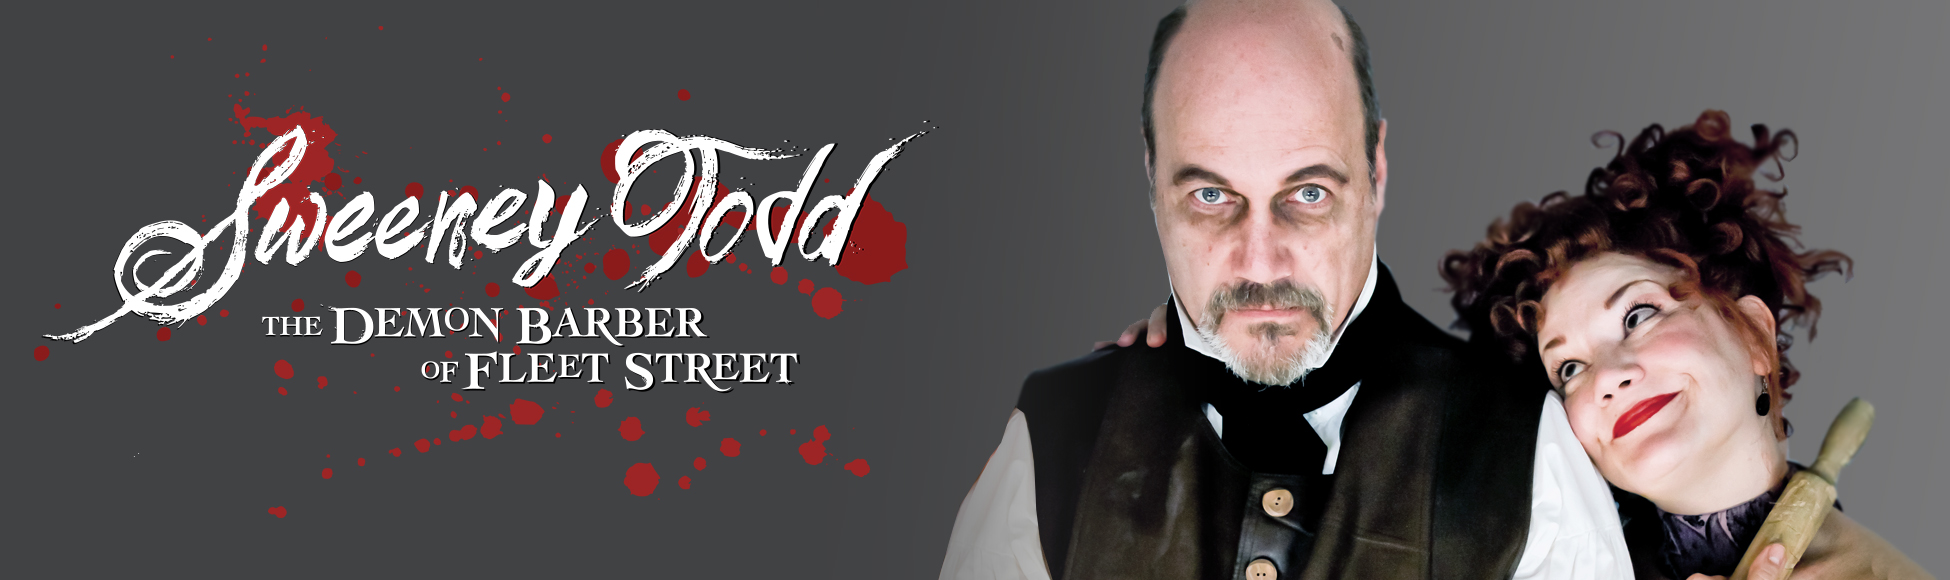 Porchlight's SWEENEY TODD Featuring David Girolmo & Rebecca Finnegan Runs Oct. 3- Nov. 9 2 Porchlight Music Theatre'smainstage20thAnniversary Season of Sondheimcommences withSweeney Todd: The Demon Barber of Fleet Street, music and lyrics byStephen Sondheimand book byHugh Wheeler, direction byPorchlight Managing Artistic DirectorMichael Weberwith music direction byPorchlight Artistic Associate Doug Peck, October 3–November 9 at Stage 773, 1225 W. Belmont Ave. Previews are Friday, Oct. 3 at 8 p.m., Saturday, Oct. 4 at 8 p.m., Sunday, Oct. 5 at 2 p.m. and Monday, Oct. 6 at 7:30 p.m.The regular run schedule is Thursdays at 7:30 p.m., Fridays at 8 p.m., Saturdays at 4 and 8 p.m. and Sundays at 2 p.m. There is an added matinee performance Thursday, Nov. 6 at 1 p.m. NOTE: *There are noThursday 7:30 p.m. performances October 9 and November 6.Tickets are $35 for preview performances, $50 for the opening night performance and reception, $39 for Thursday performances and $45 for all other performances. Subscriptions to the entire20th Anniversary Season,includingSweeney Todd,the first production of the season,Sondheim on SondheimandA Funny Thing Happened on the Way to the Forumare currently on sale as well as single tickets for the entire season. To purchase subscriptions or single tickets visitporchlightmusictheatre.orgor call 773.777.9884. Groups of ten or more may receive discounts on tickets purchased via Group Theater Tix at 312.423.6612 orgrouptheatertix.com.  One of Sondheim's most beloved pieces, based on the Victorian era serial, this Tony and Olivier Award-winning musical is a spine-chilling masterpiece of obsession, retribution and culinary curiosity telling the tale of London barber Benjamin Barker (Porchlight Artistic AssociateDavid Girolmo). Torn from his family and exiled for 15 years on a miscarriage of justice, Barker returns home to a city as corrupt as when he left. Hell-bent on revenge after learning the agonizing fate of his wife and daughter, he assumes t